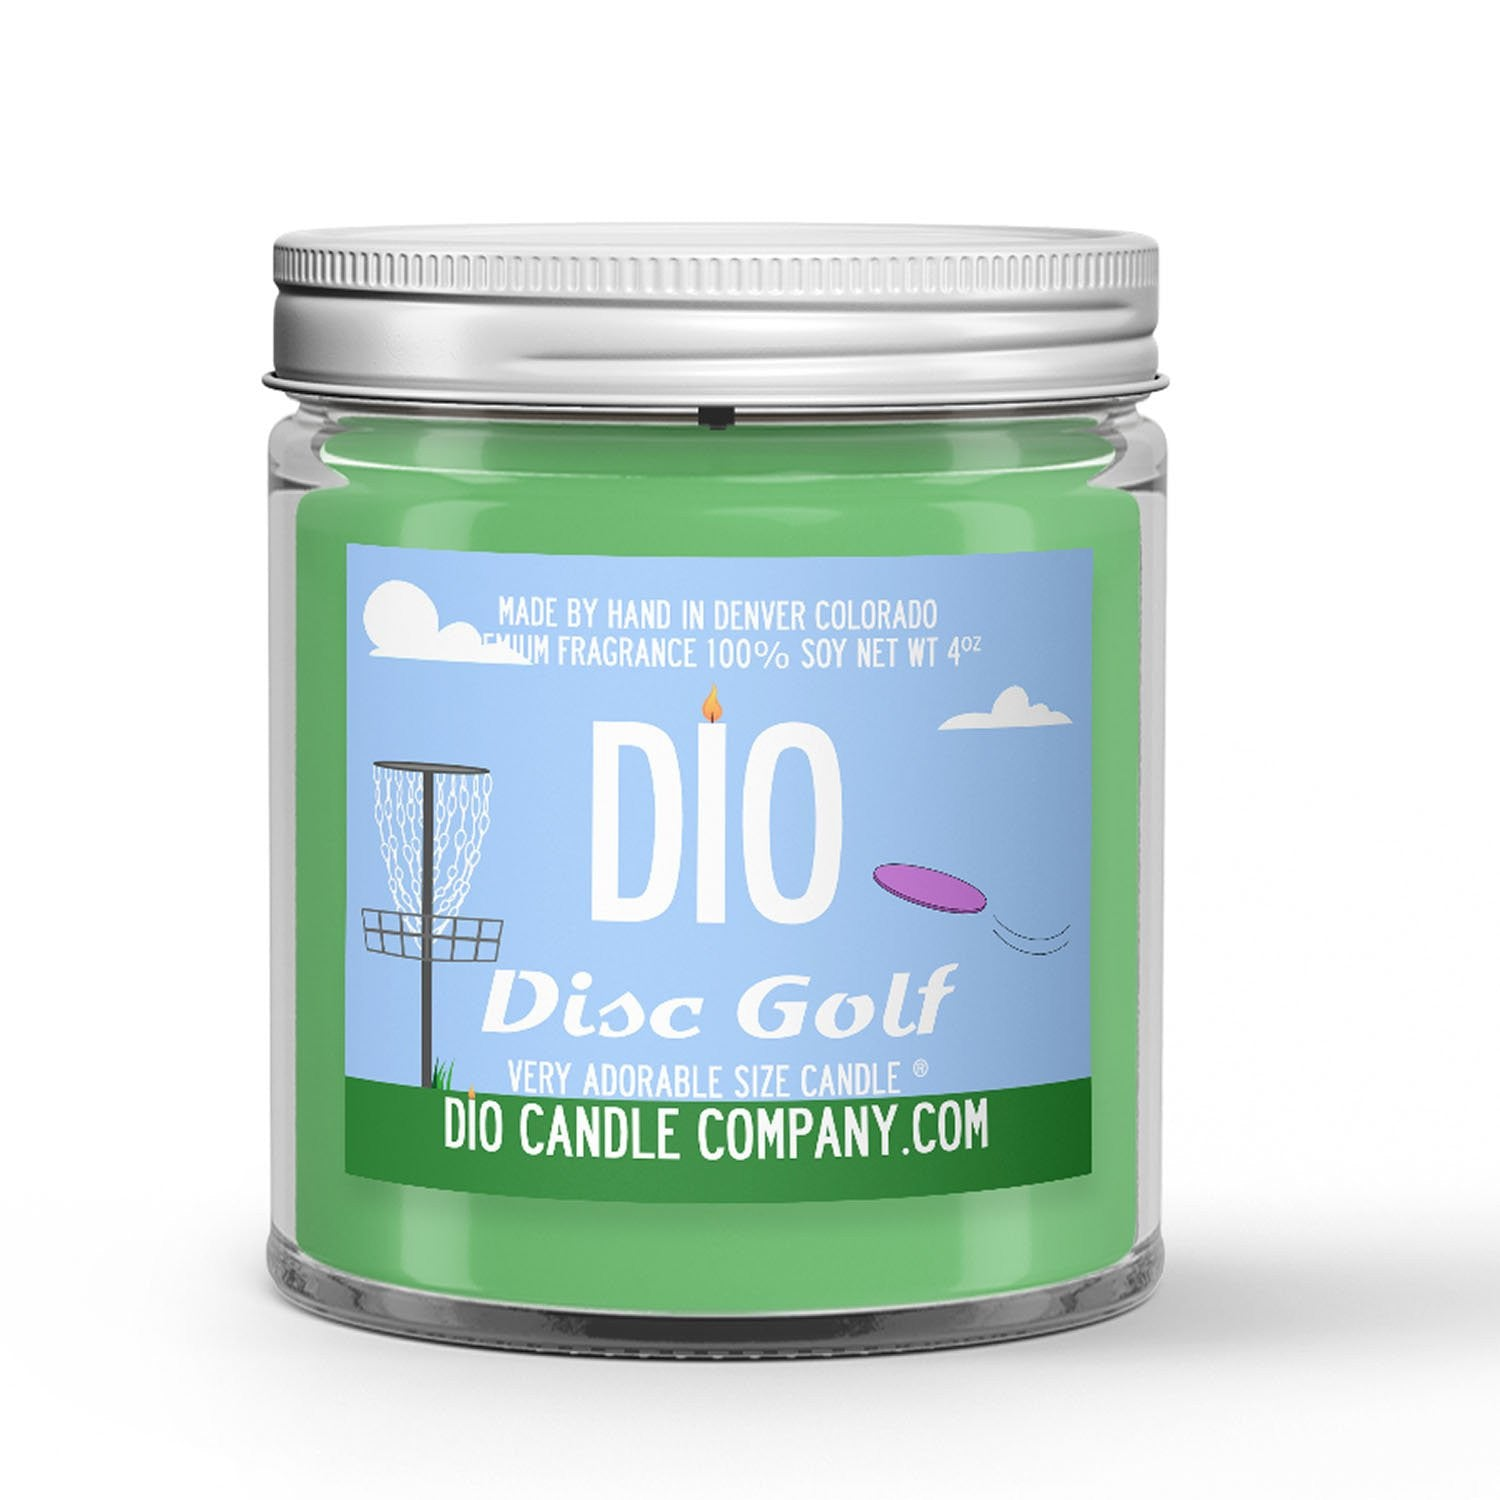 Disc Golf Candle - Grass - Dirt - Wind - 4oz Very Adorable Size Candle® - Dio Candle Company